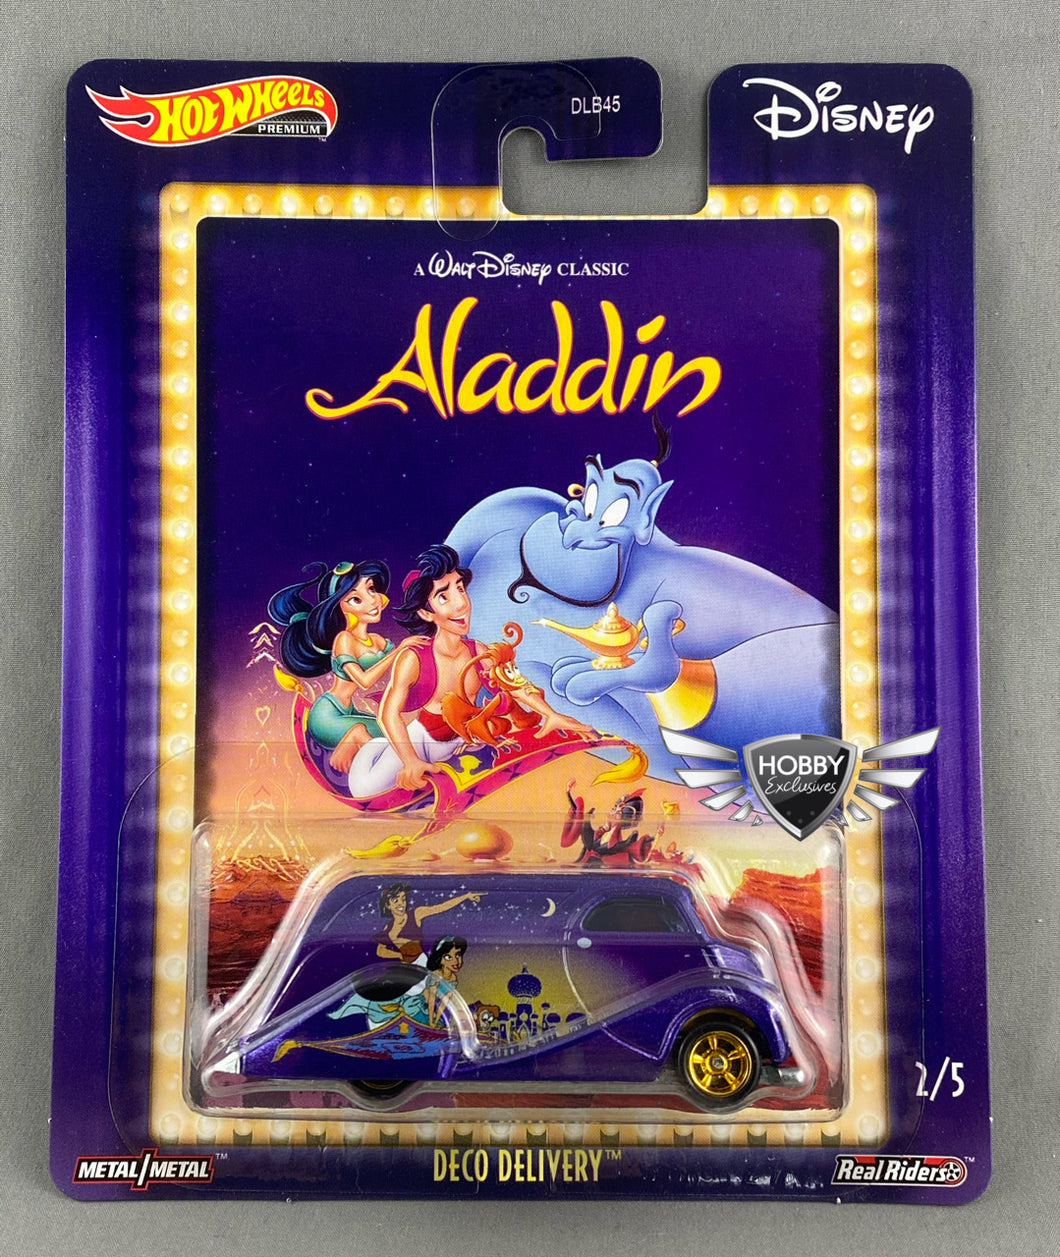 Deco Delivery ALADDIN Disney POP Culture Hot Wheels #2